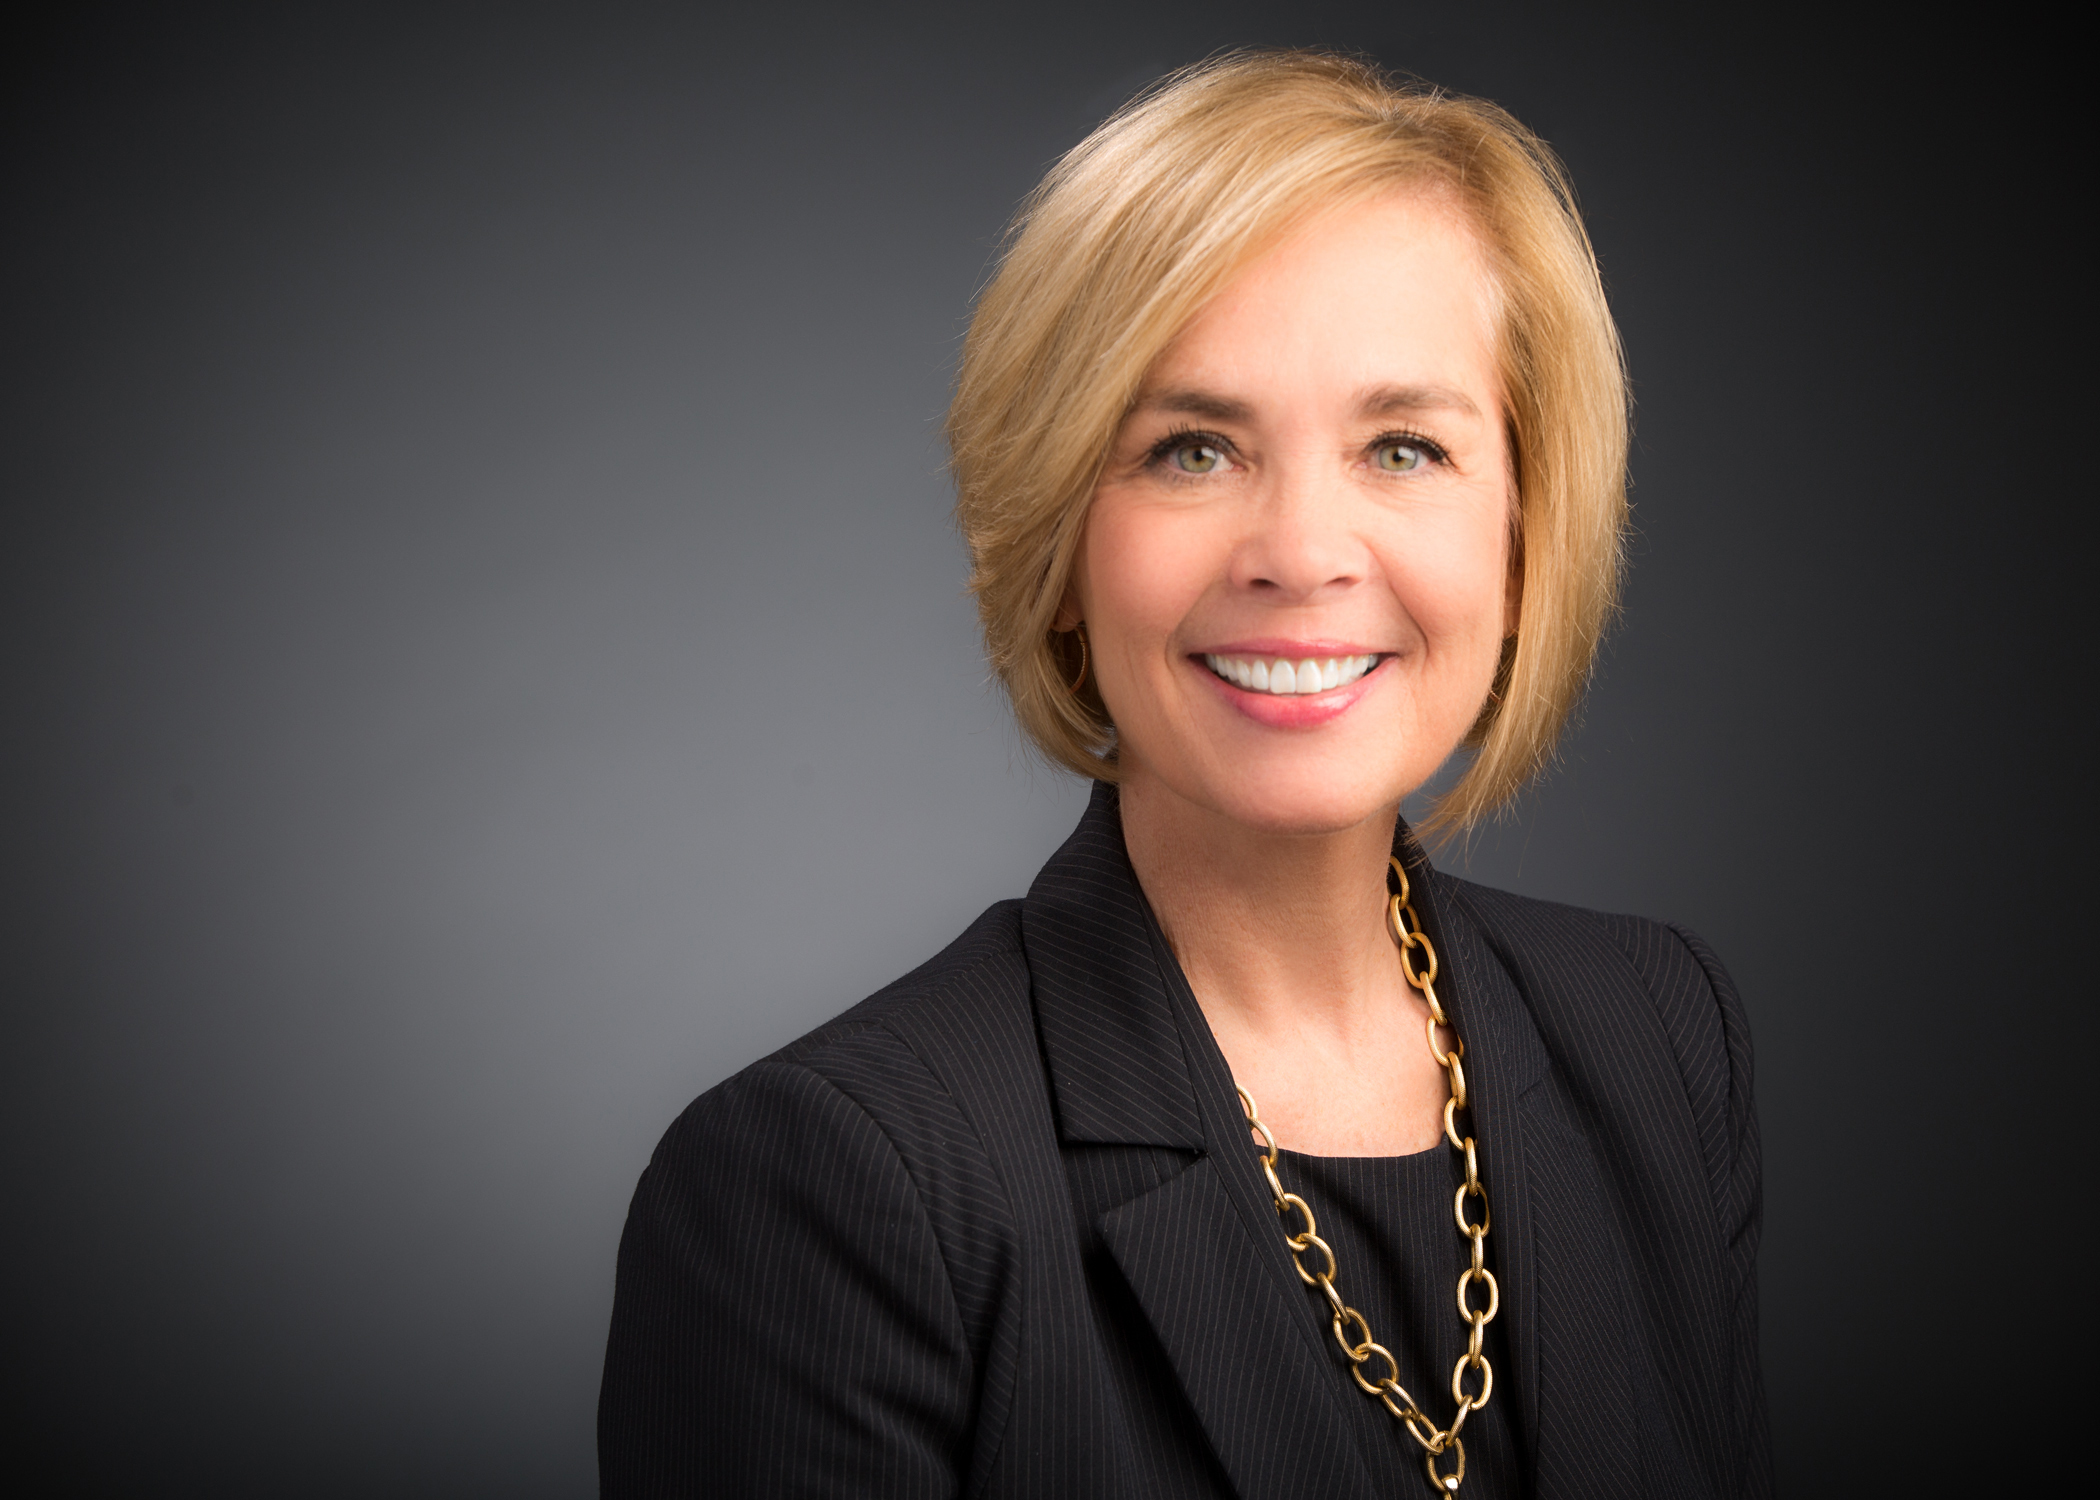 Patty Kellerhals Named to American Banker's 2018 Women to